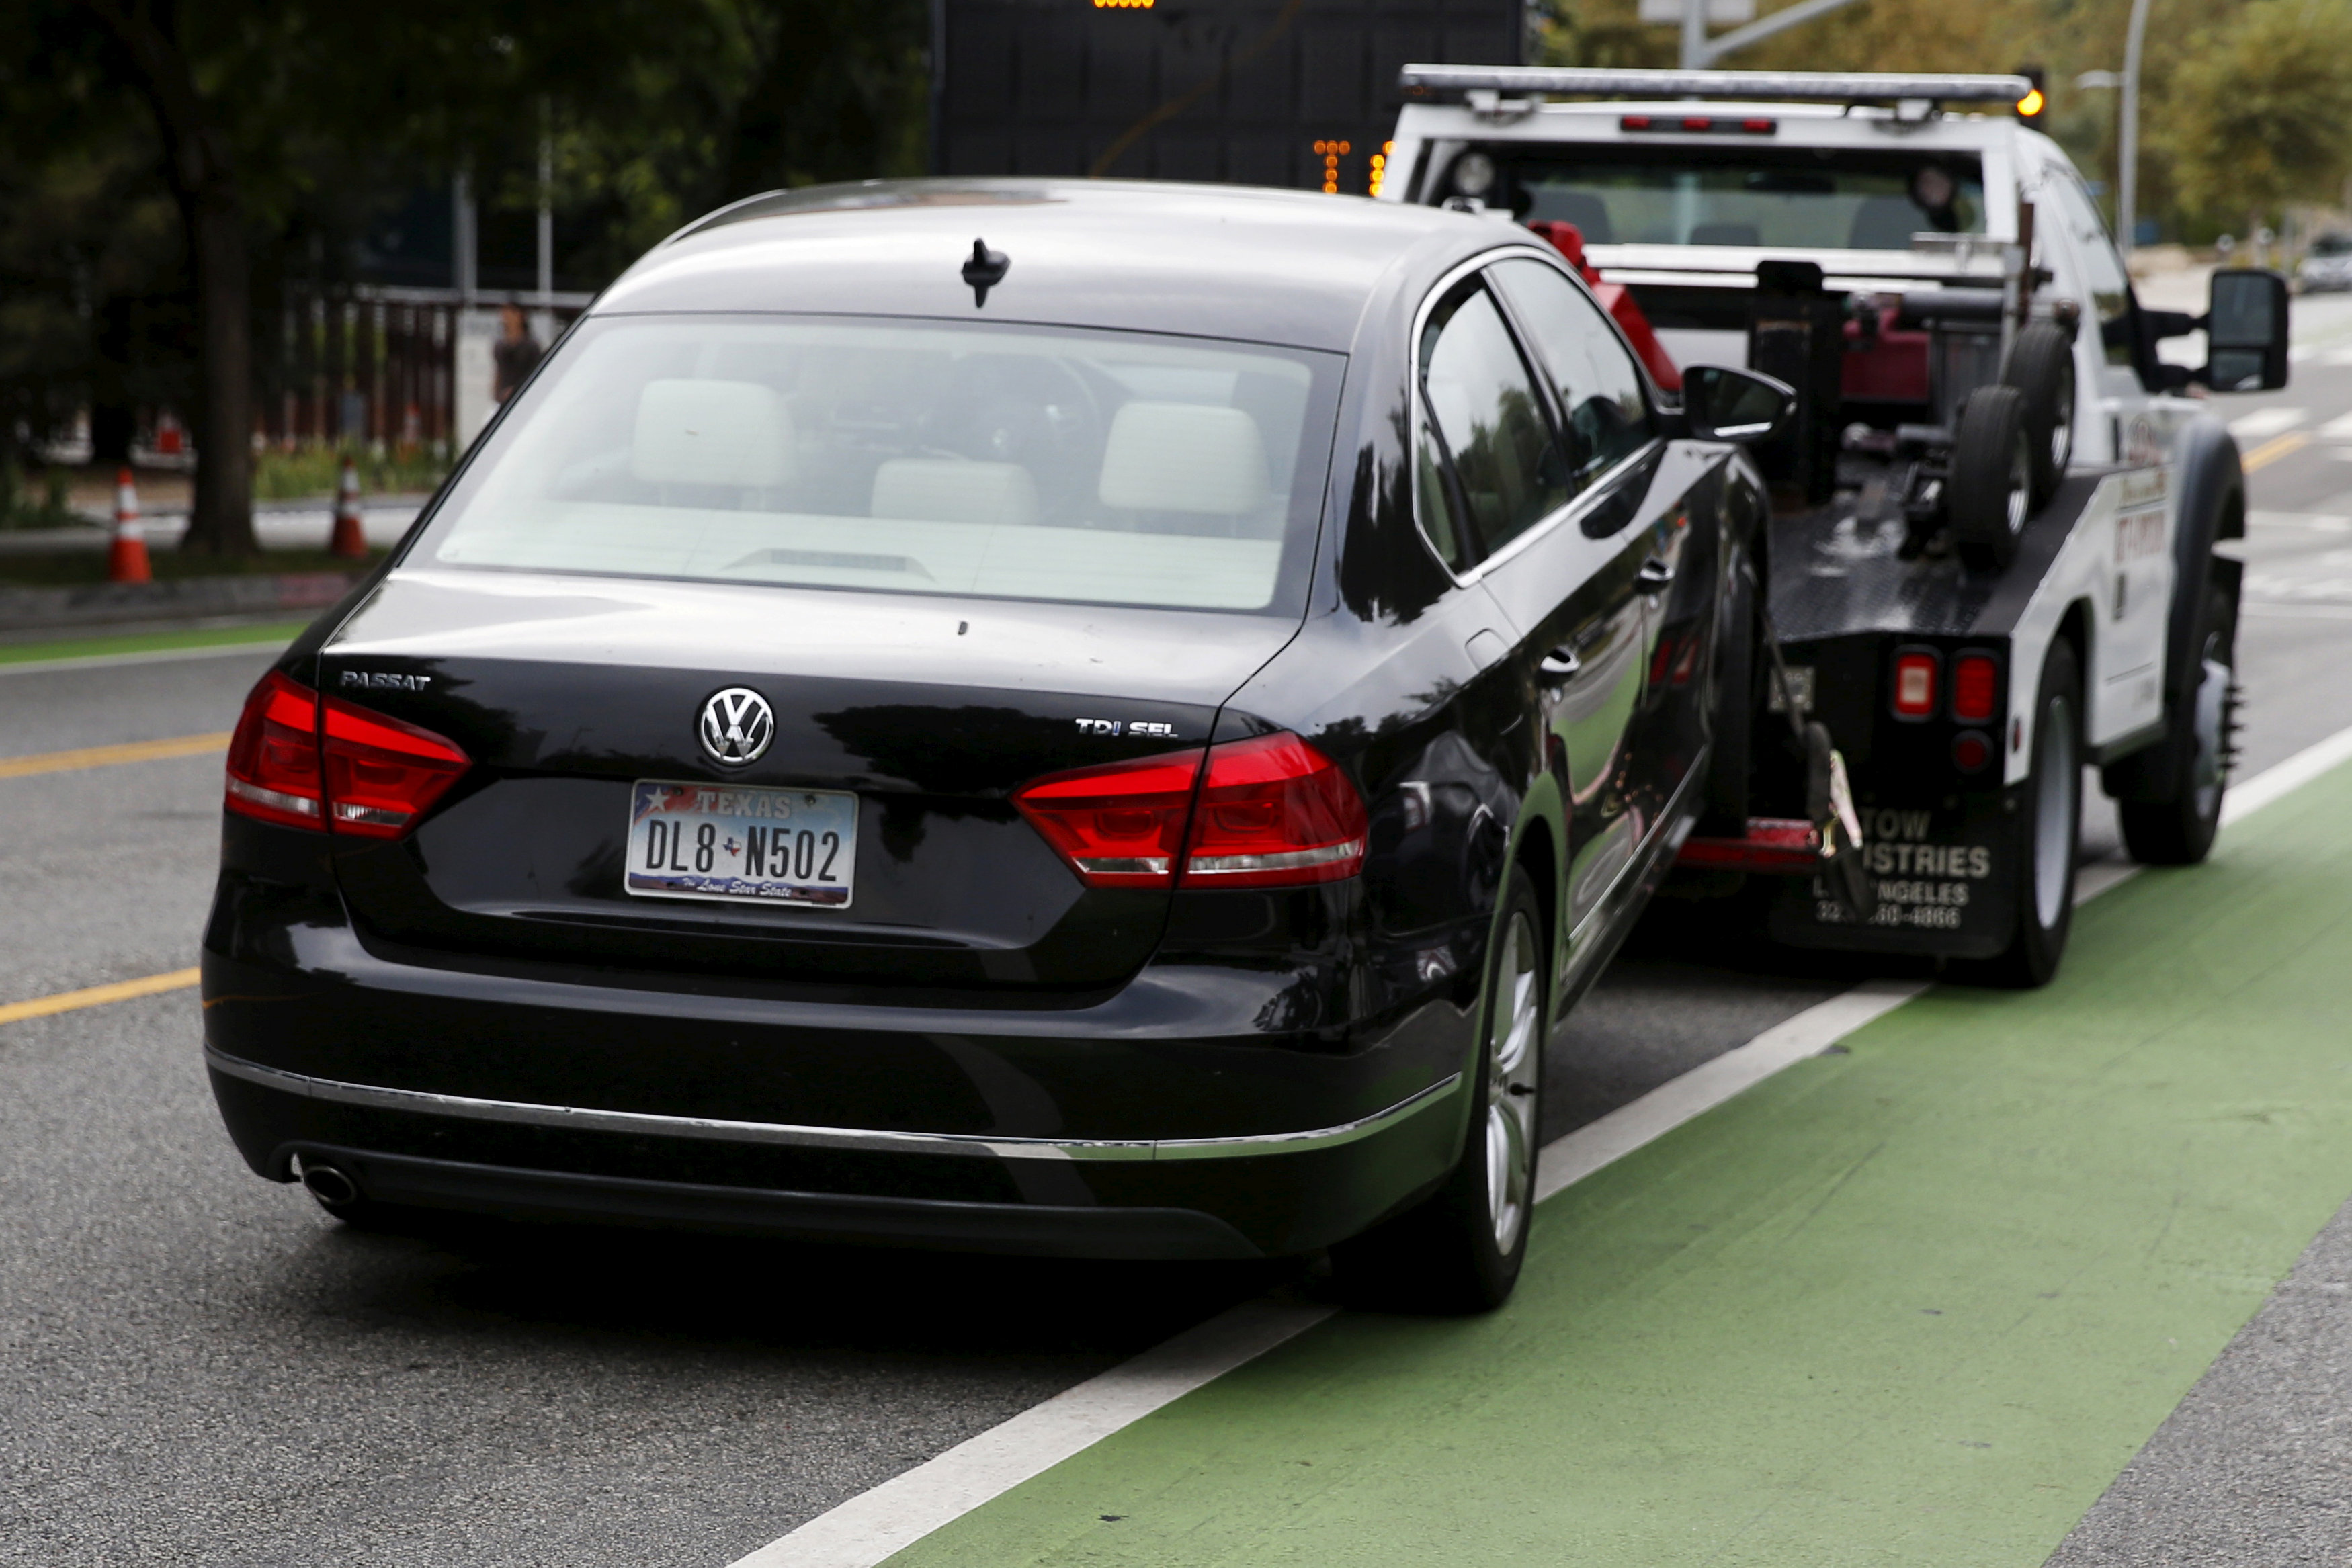 FILE PHOTO: A diesel Volkswagen Passat TDI SEL is taken away by a tow truck for having an expired registration, in Santa Monica, California, U.S. on September 21, 2015. REUTERS/Lucy Nicholson/File Photo